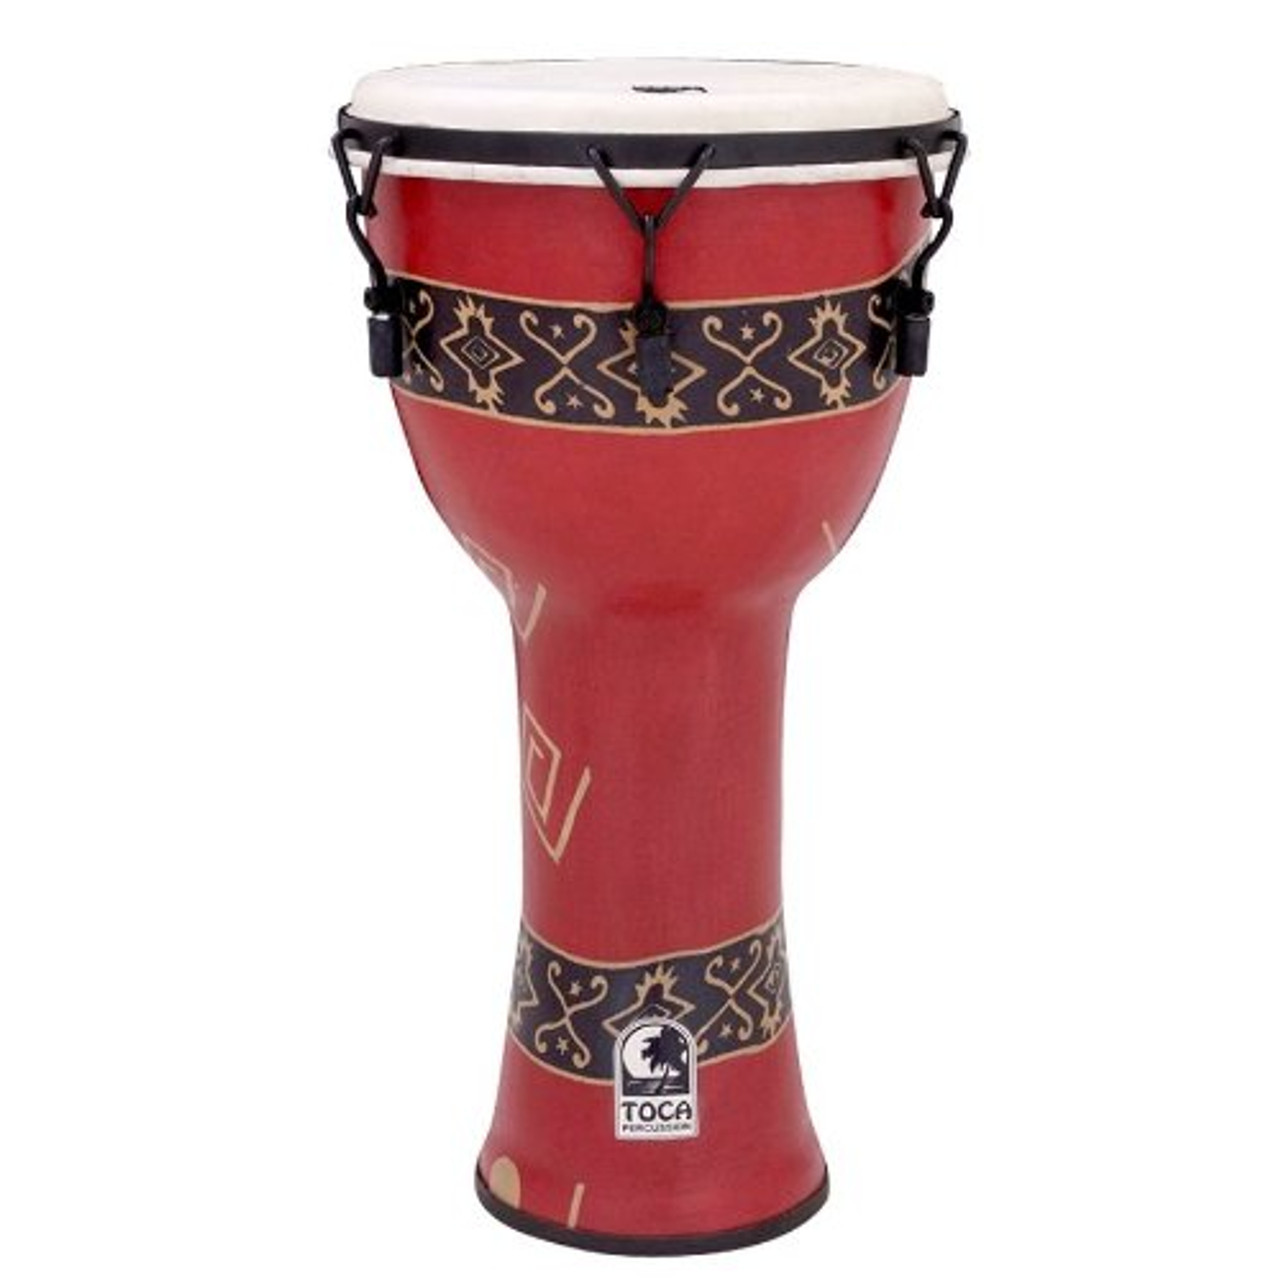 Toca a SFDMX-9RP Freestyle Mechanically Tuned 9-Inch Djembe - Bali Red Finish